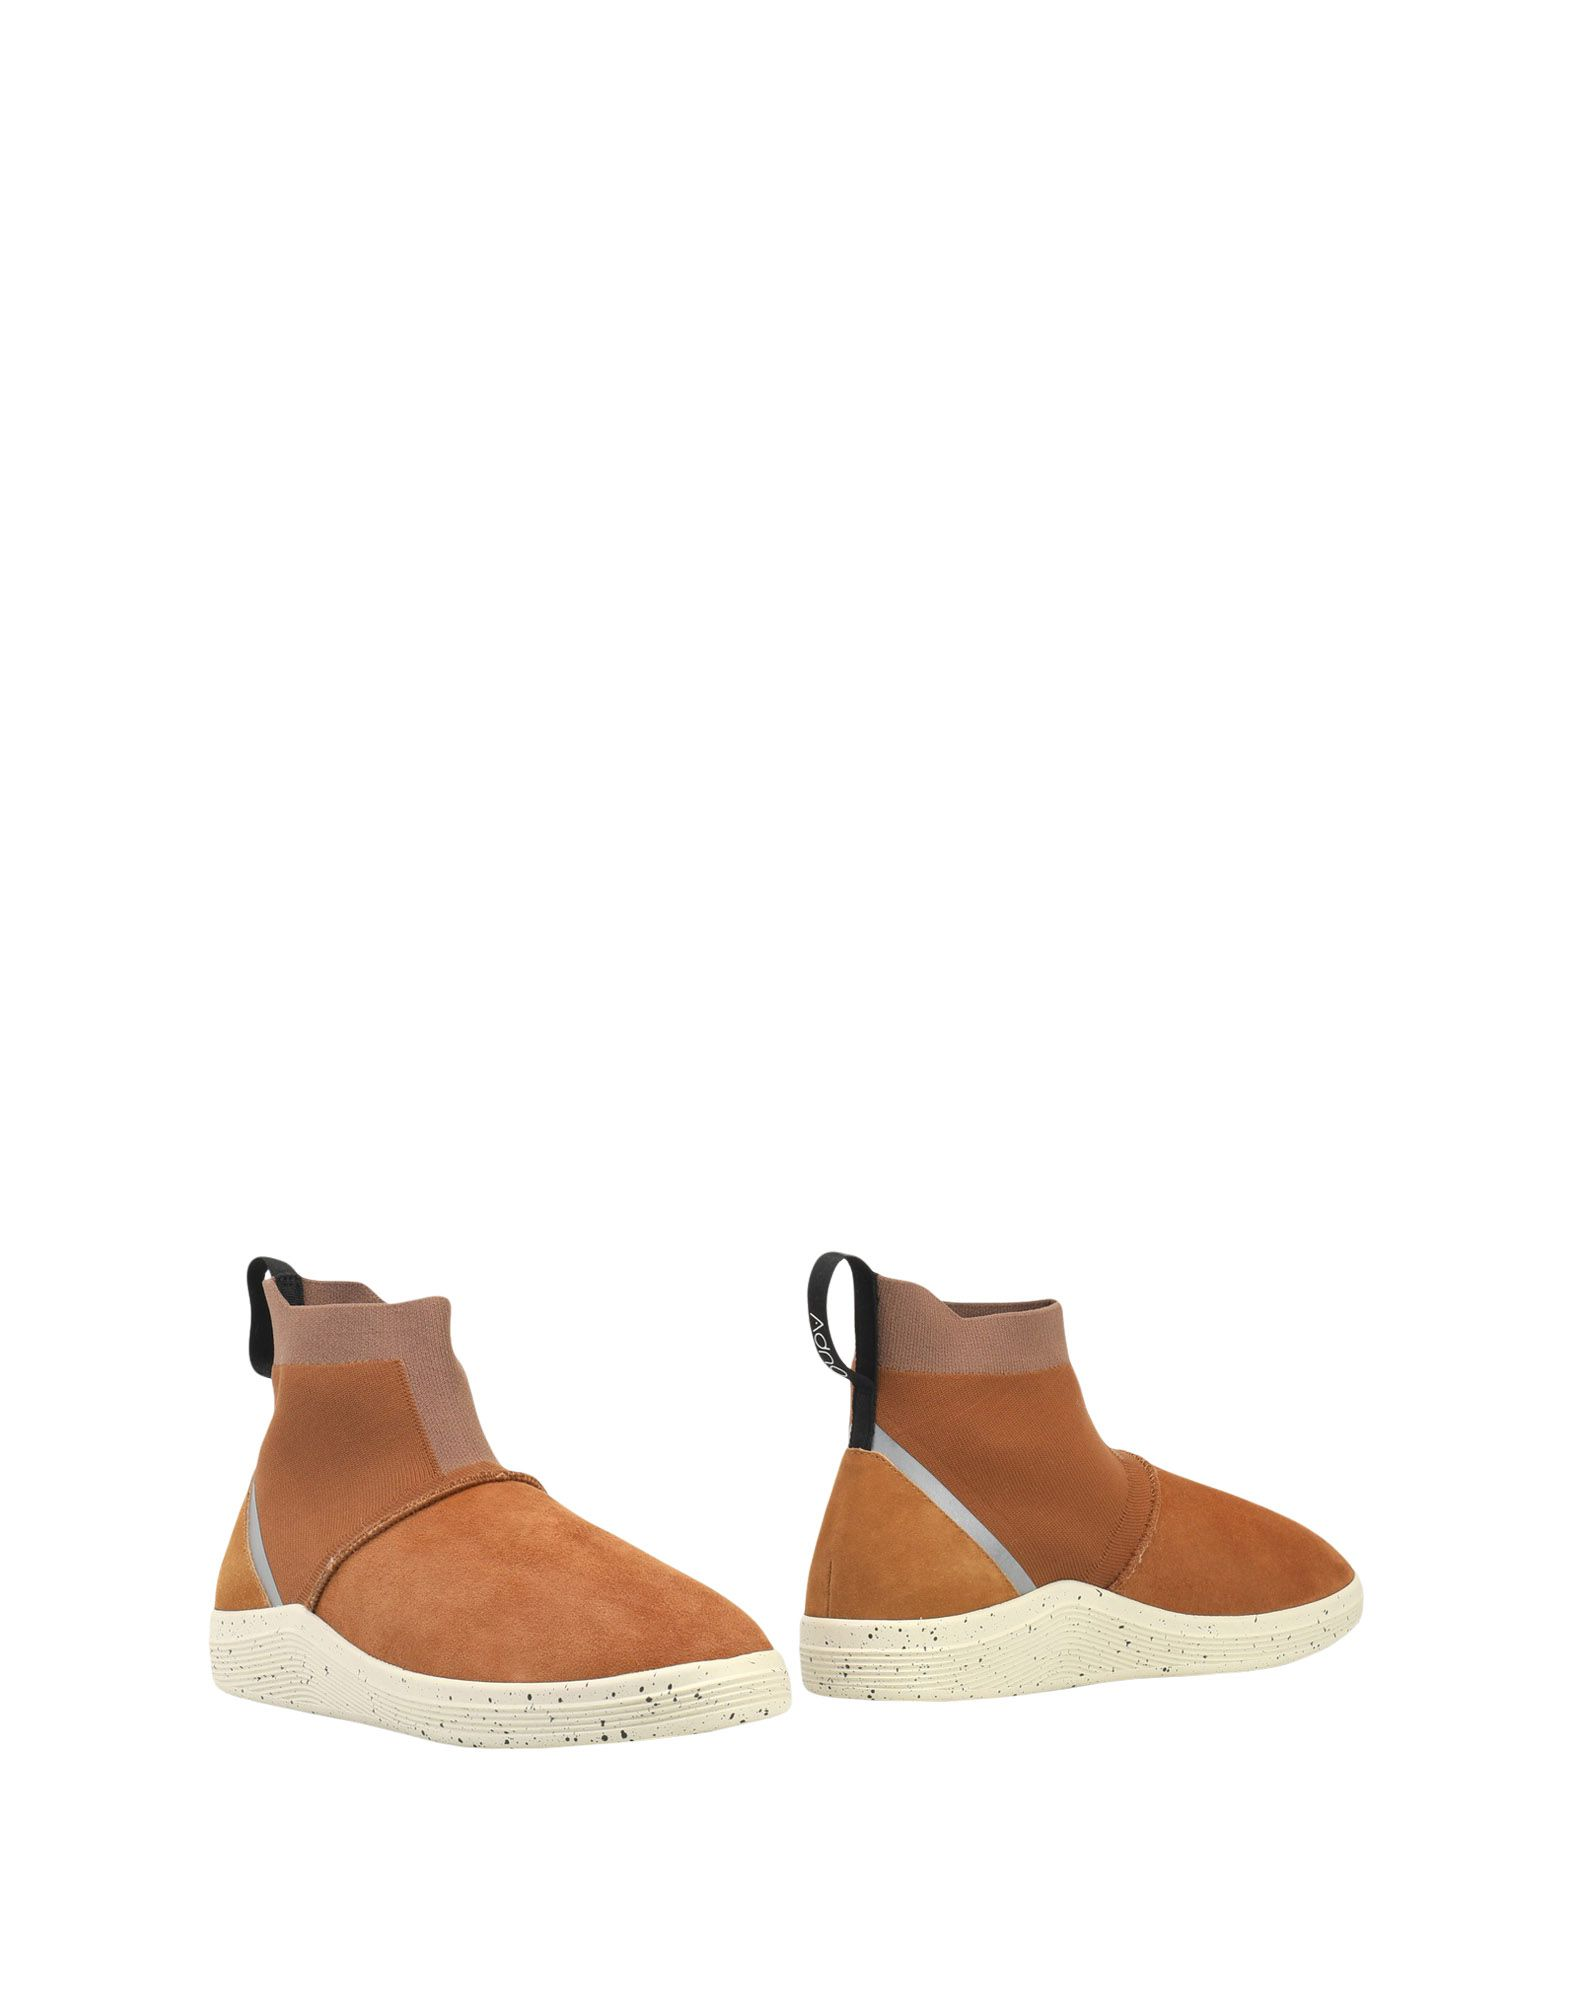 ADNO &Reg; Ankle Boots in Brown